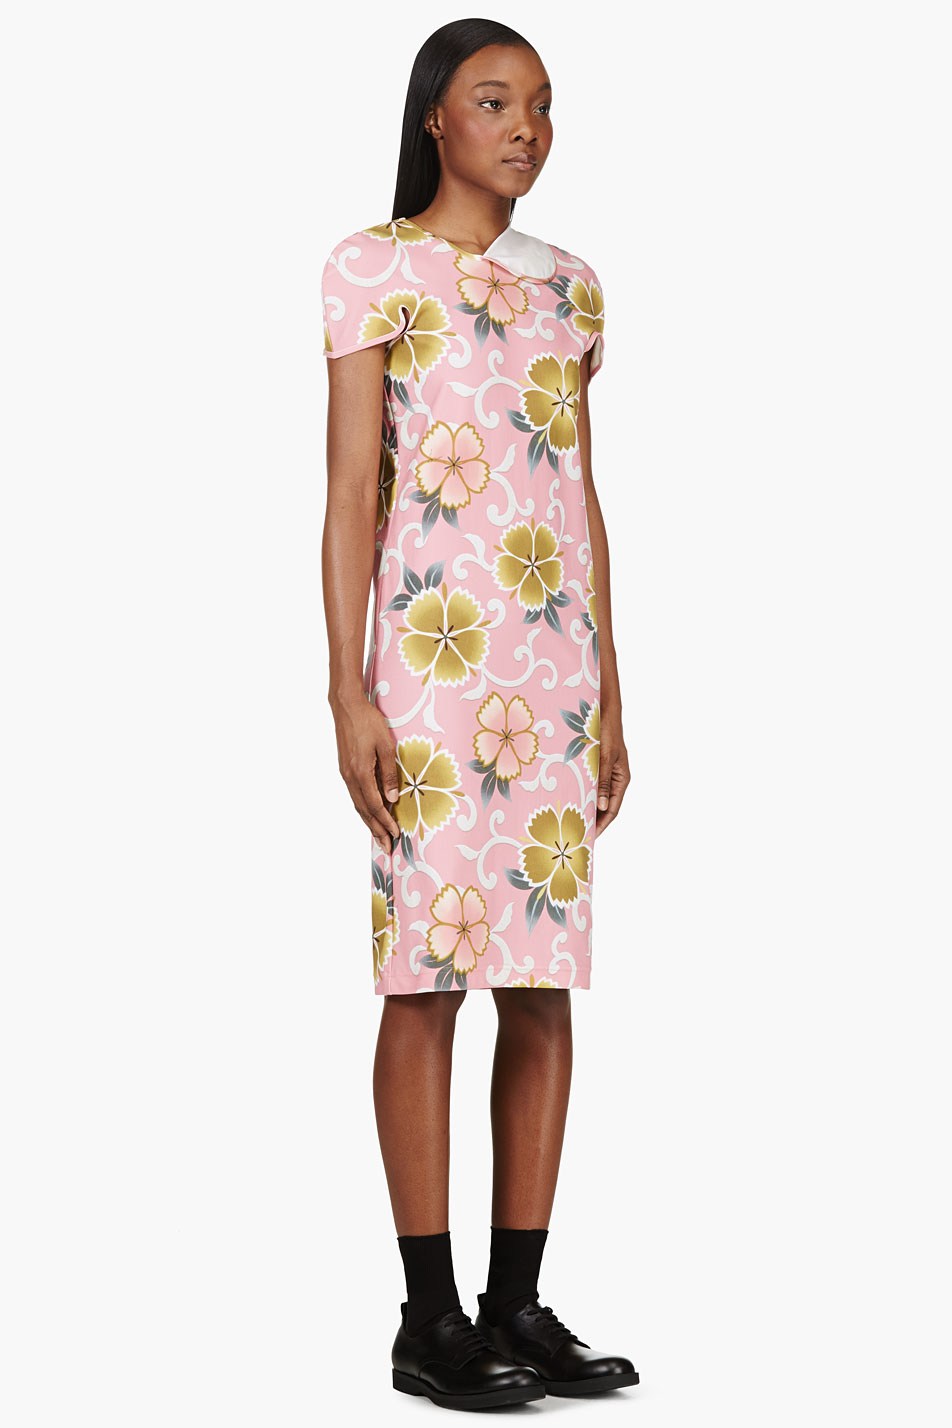 Comme-des-Garcons-Pink-Floral-Stretch-Dress_2